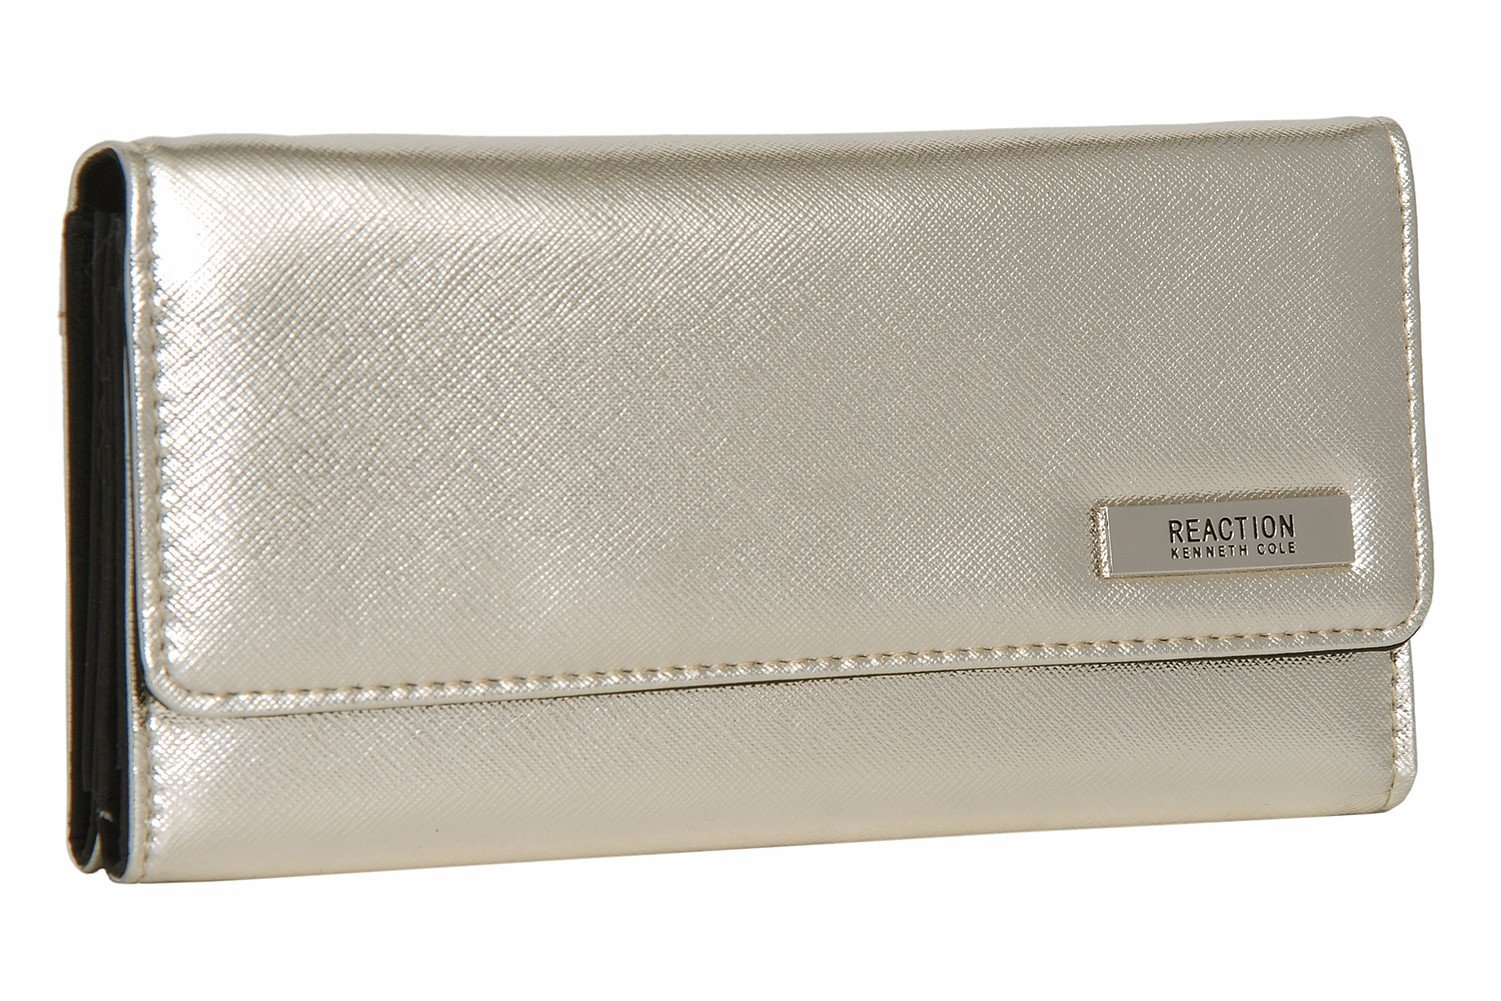 Kenneth Cole Reaction Never Let Go Trifold Flap Clutch Marina ONE SIZE